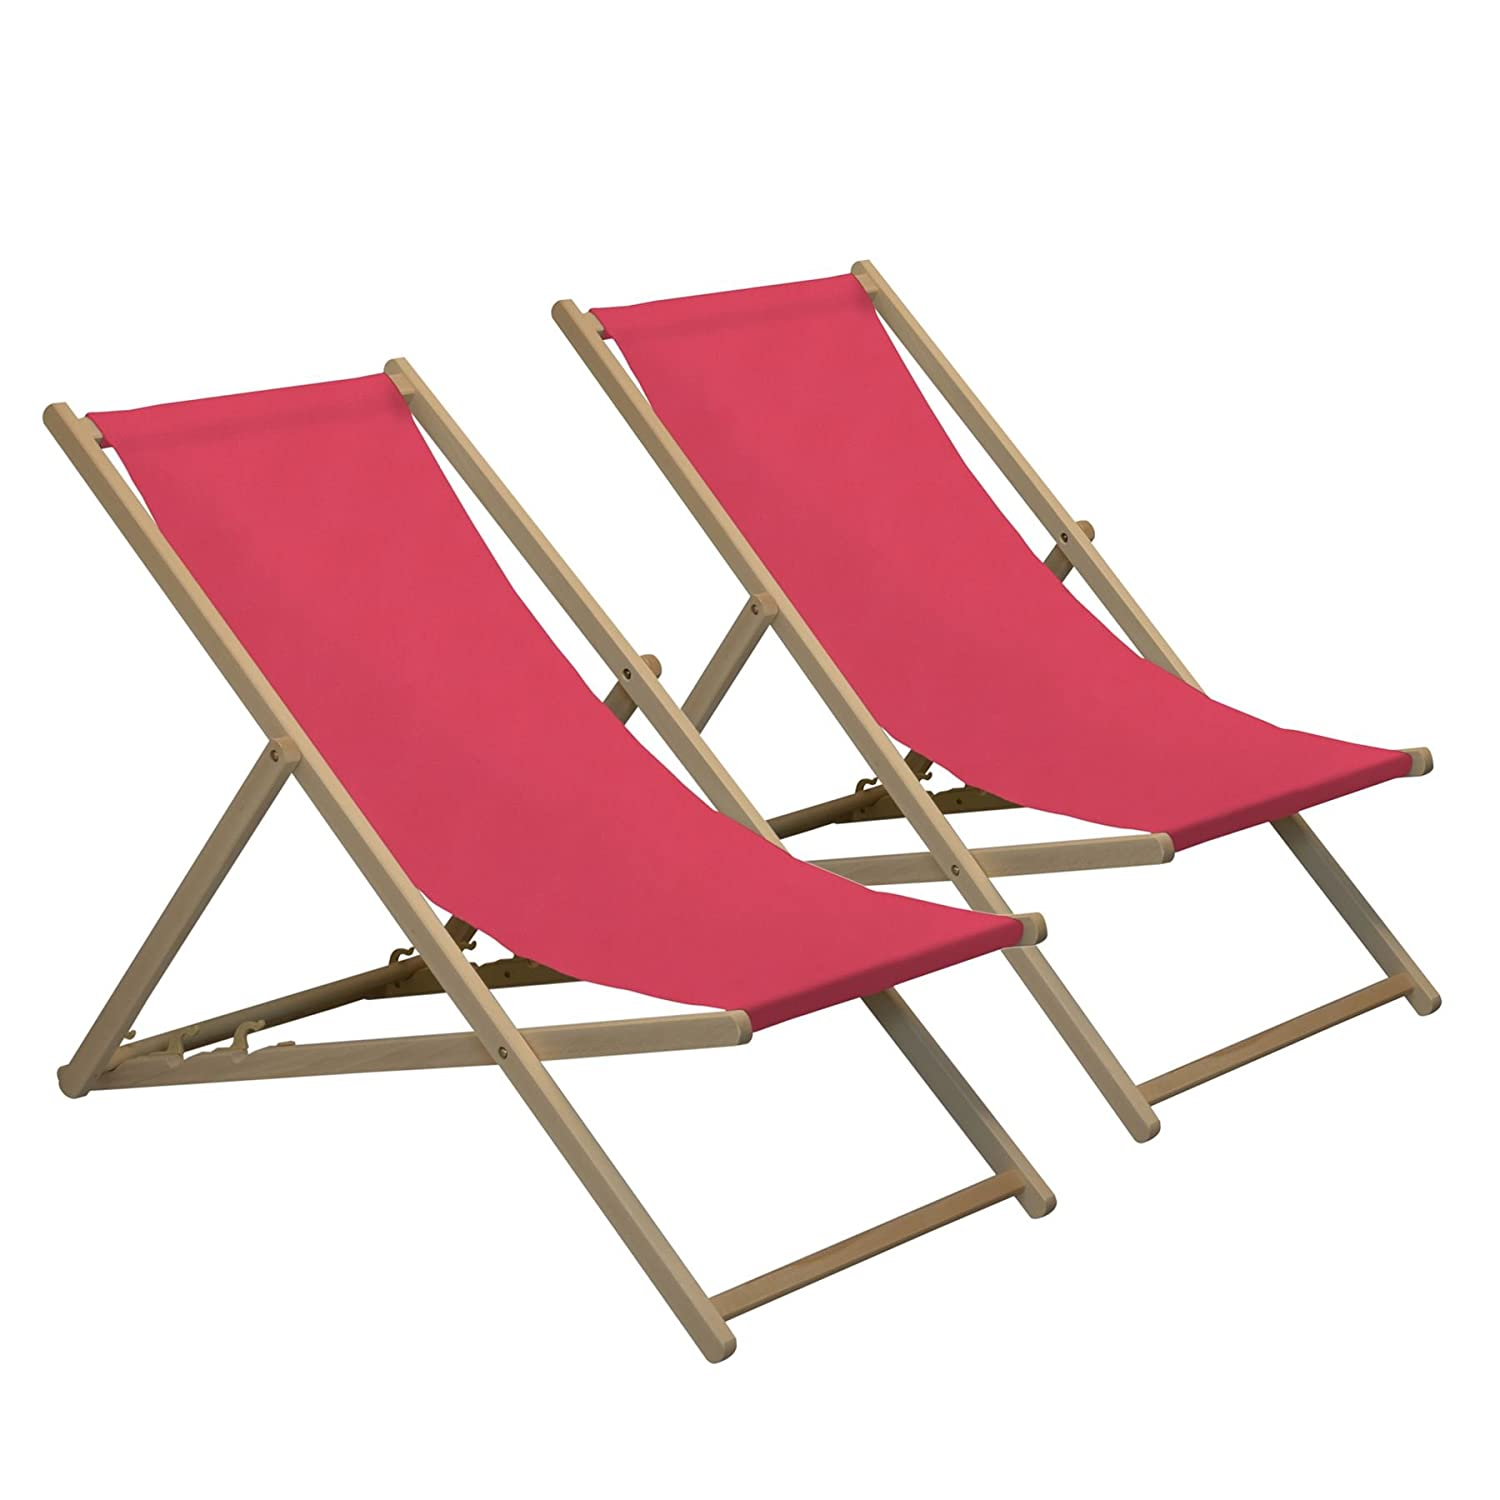 Harbour Housewares Traditional Adjustable Wooden Beach Garden Deck Chair - Pink - Pack of 2